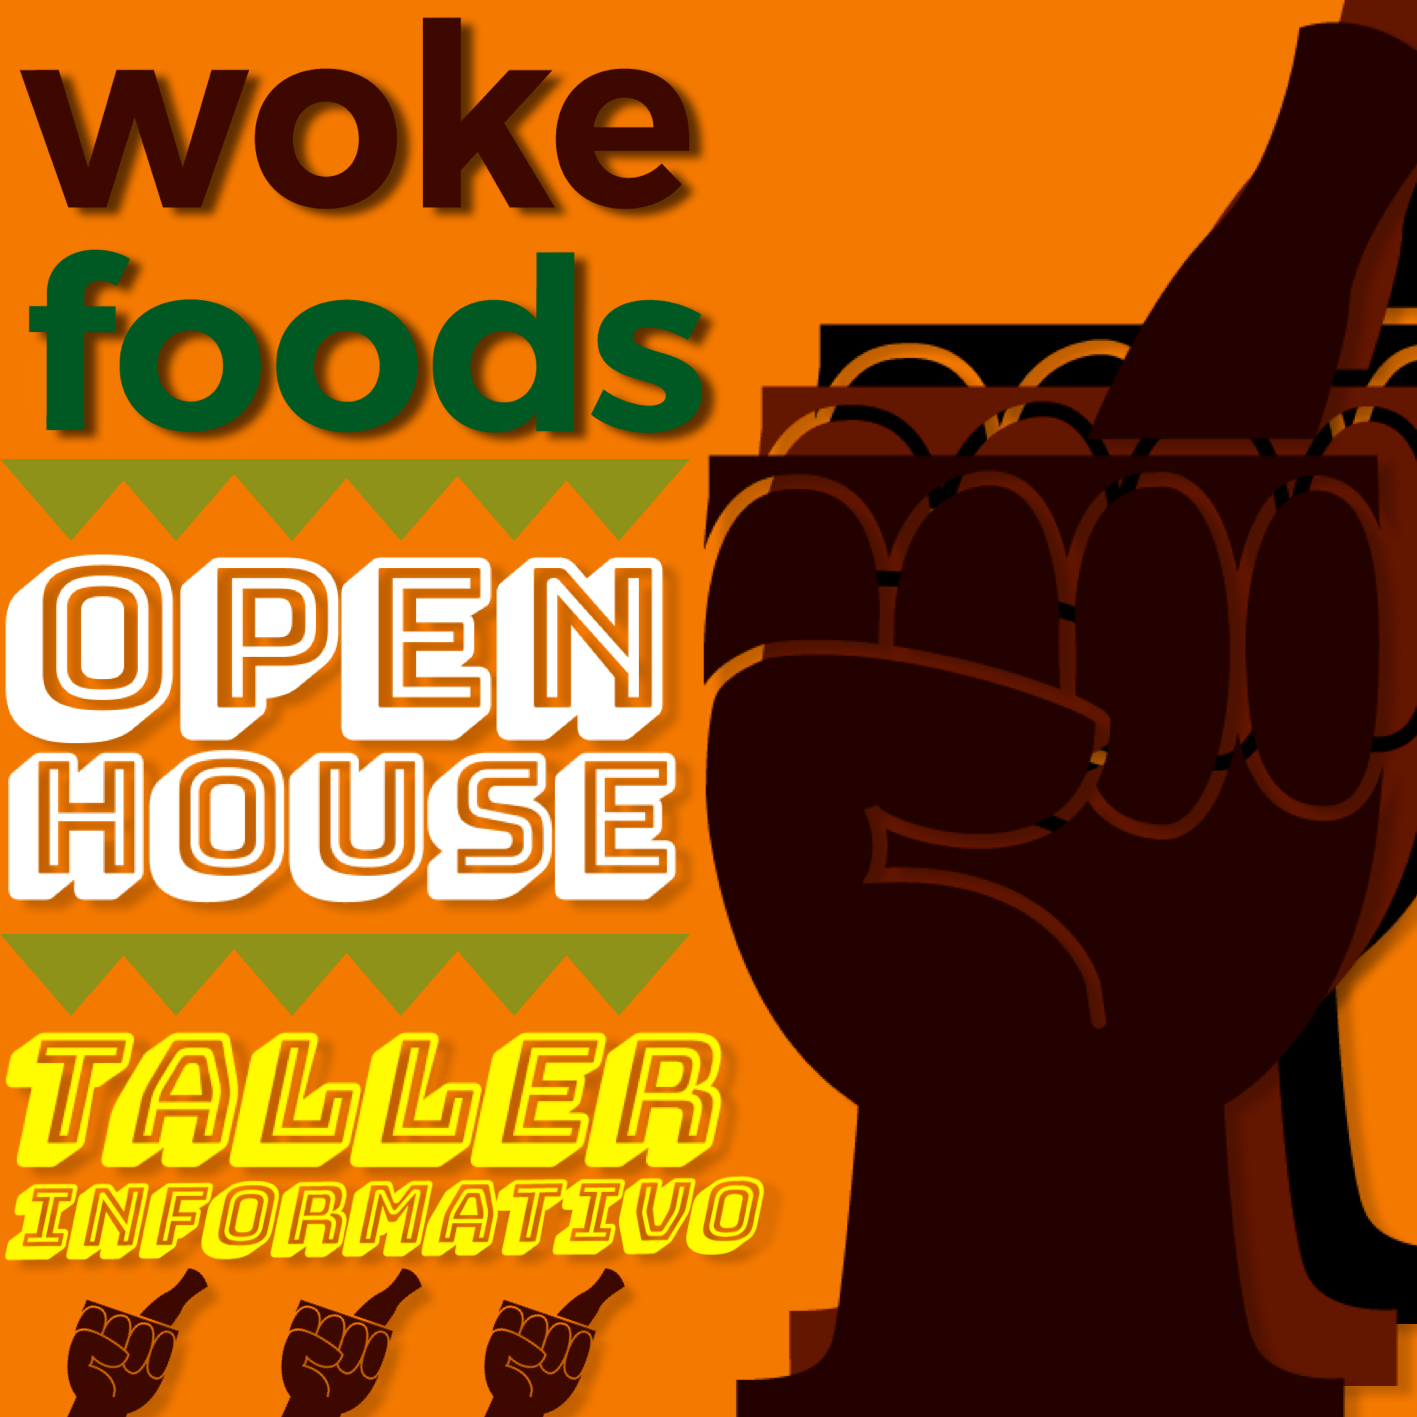 Woke_Foods_Open_House_square_banner_4.png